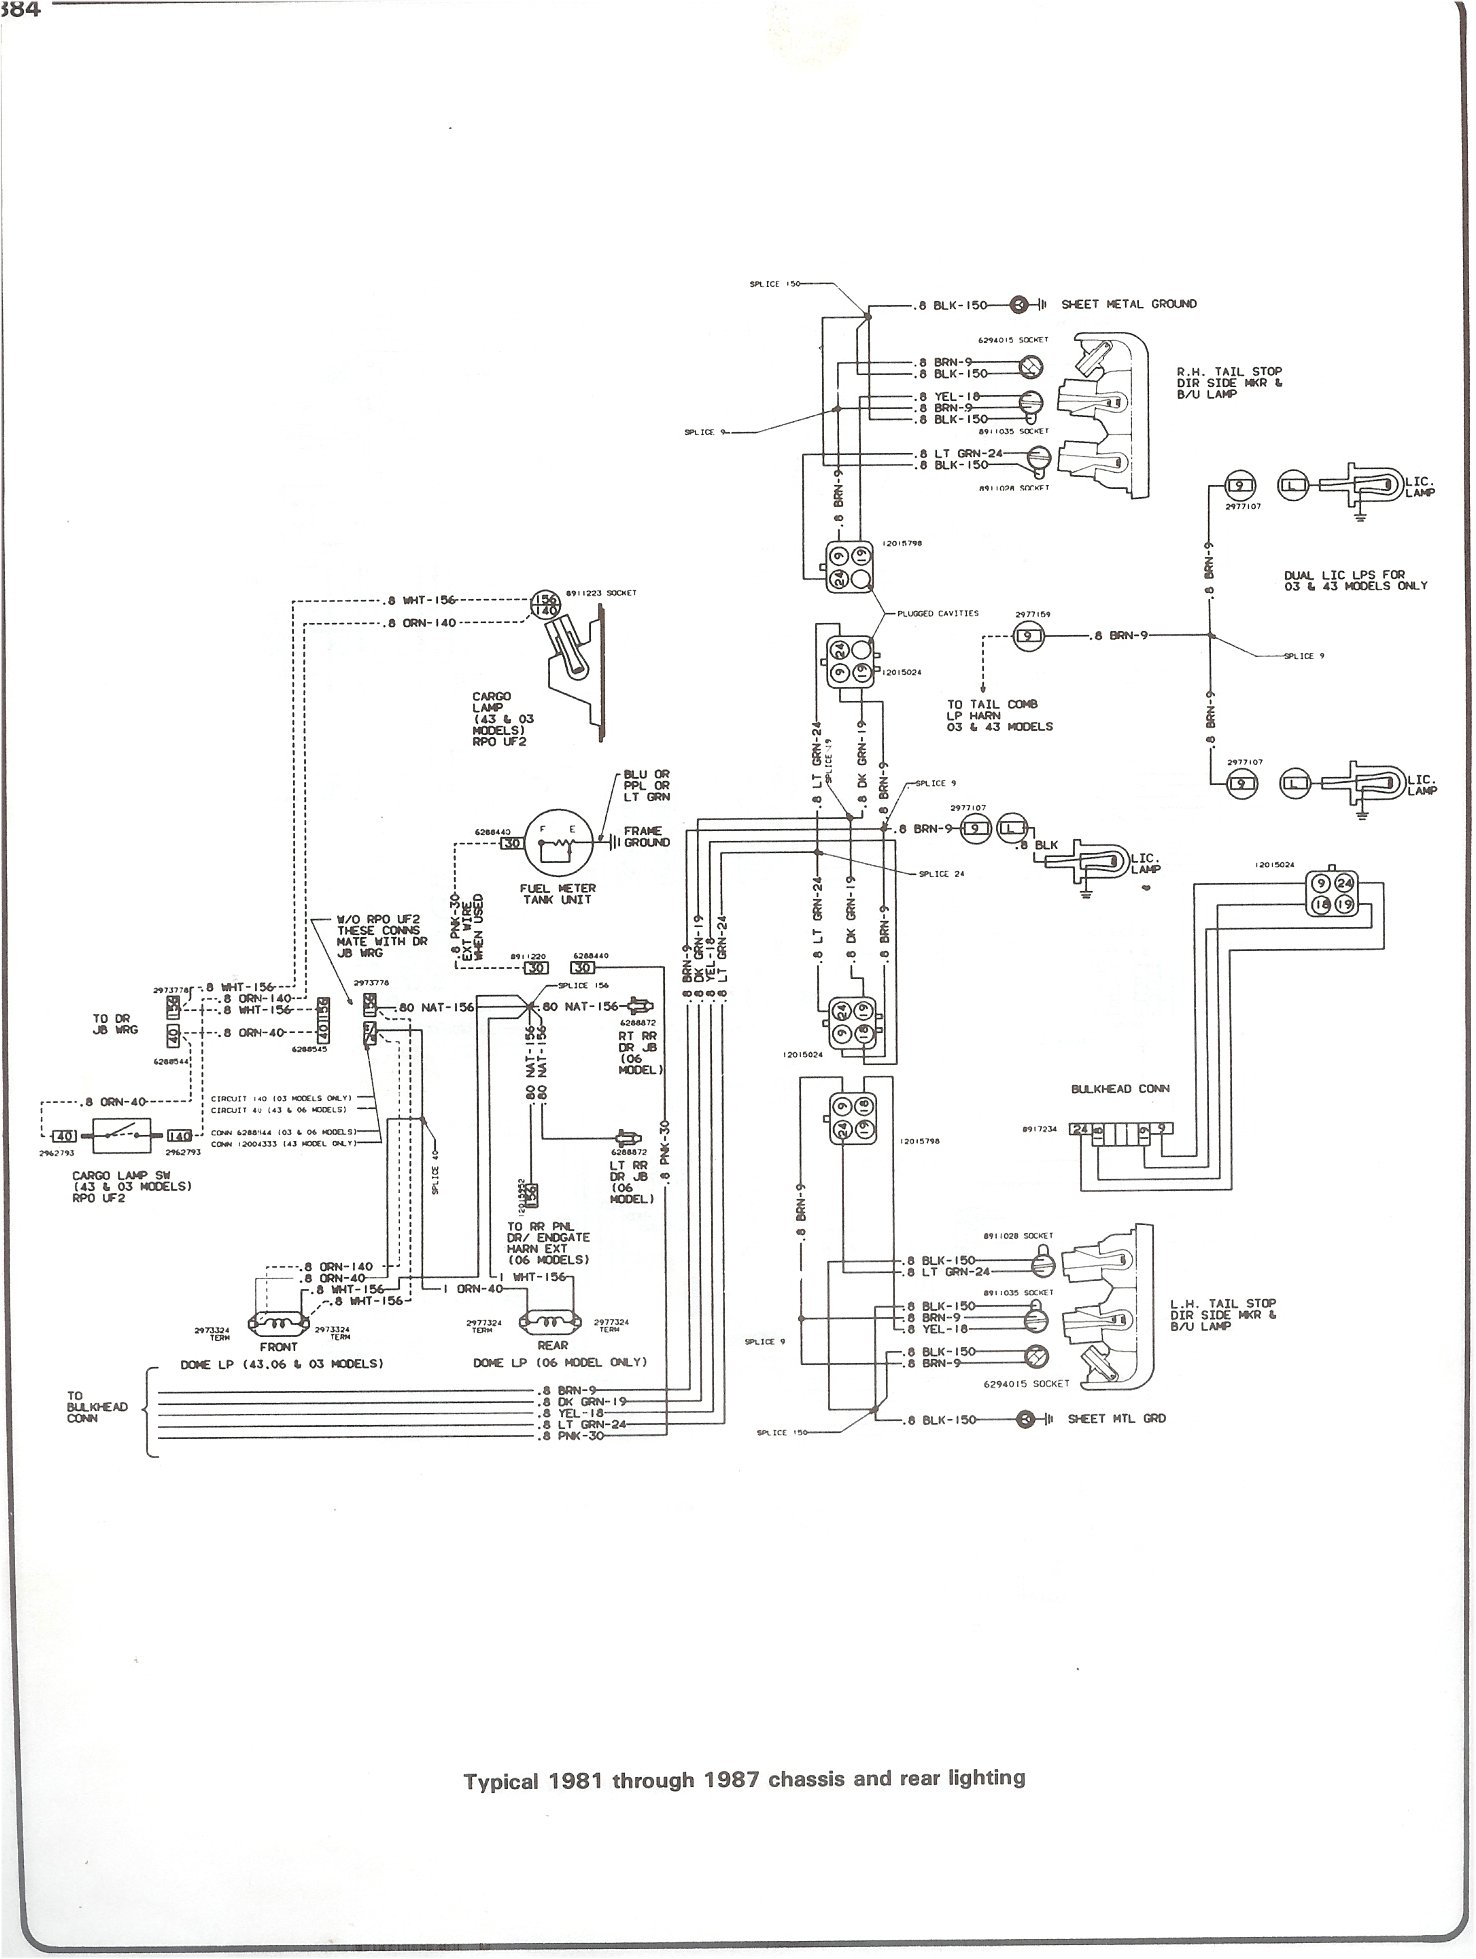 c10 wiring diagram chevy truck wiring diagram image wiring diagram 2003 Chrysler Stereo Wiring Diagram plete wiring diagrams 81 87 i6 engine partment acircmiddot 81 87 v8 engine partment acircmiddot 81